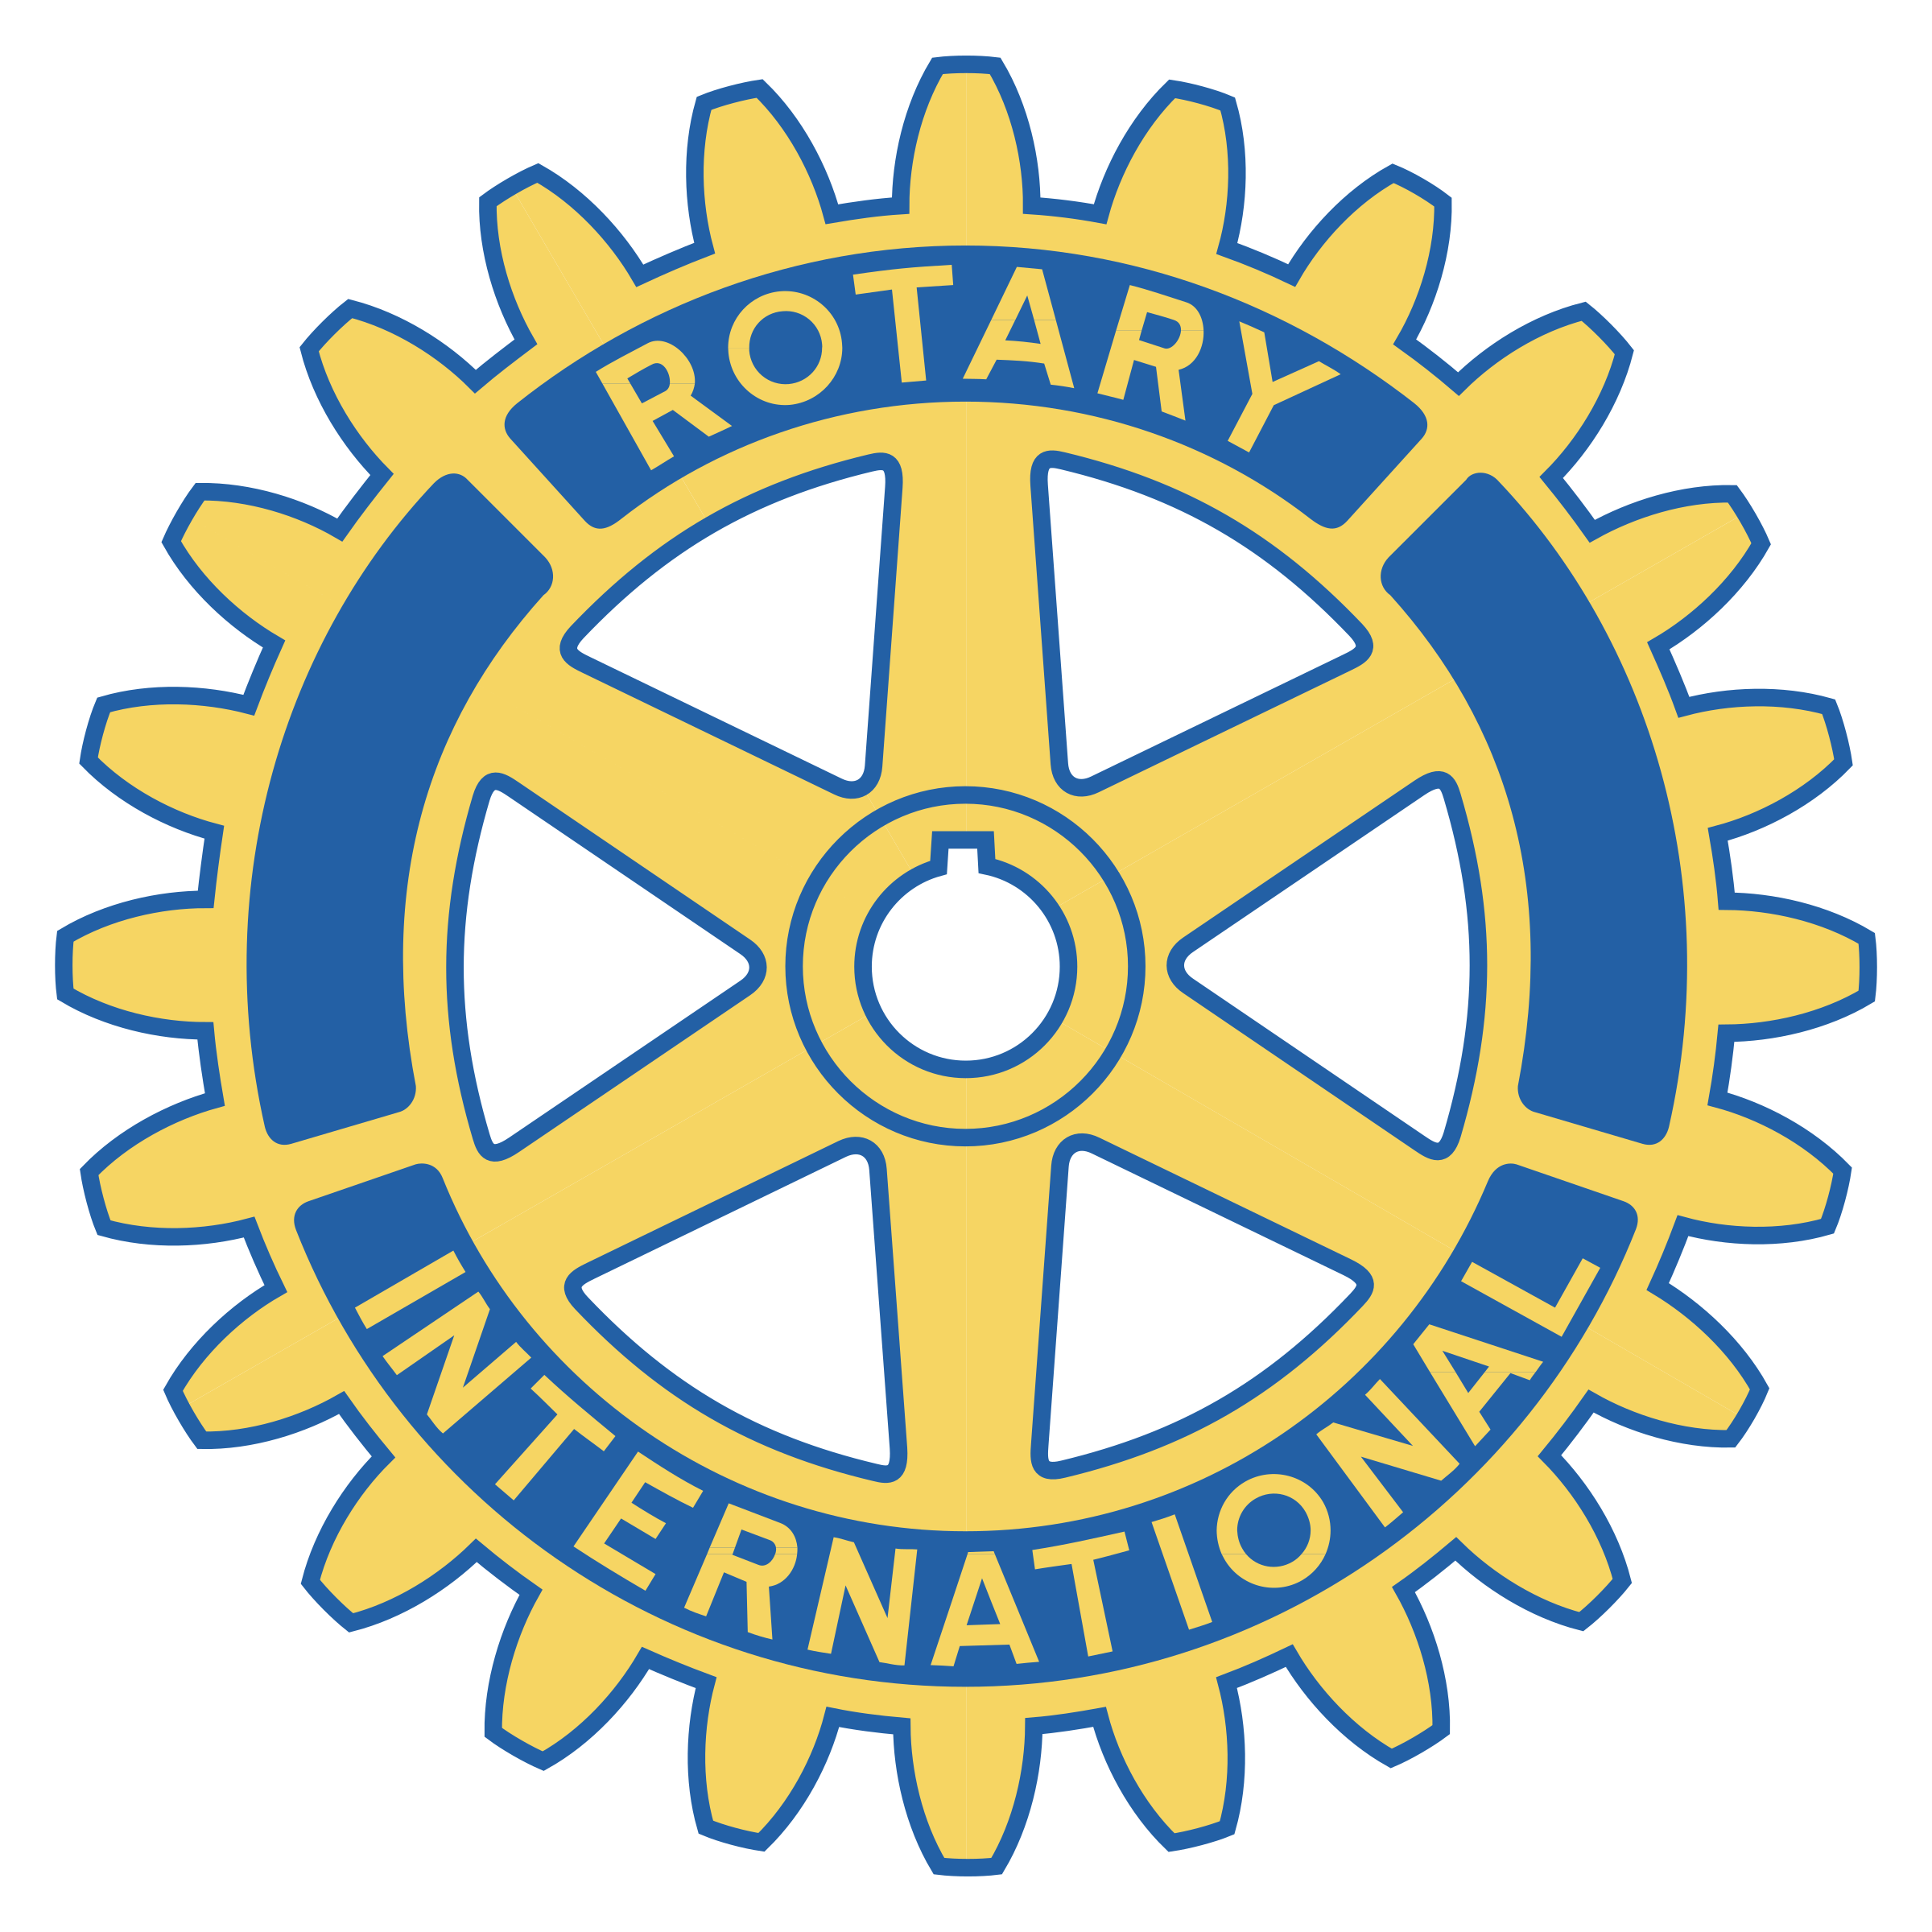 rotary-international-6-logo-png-transparent.png